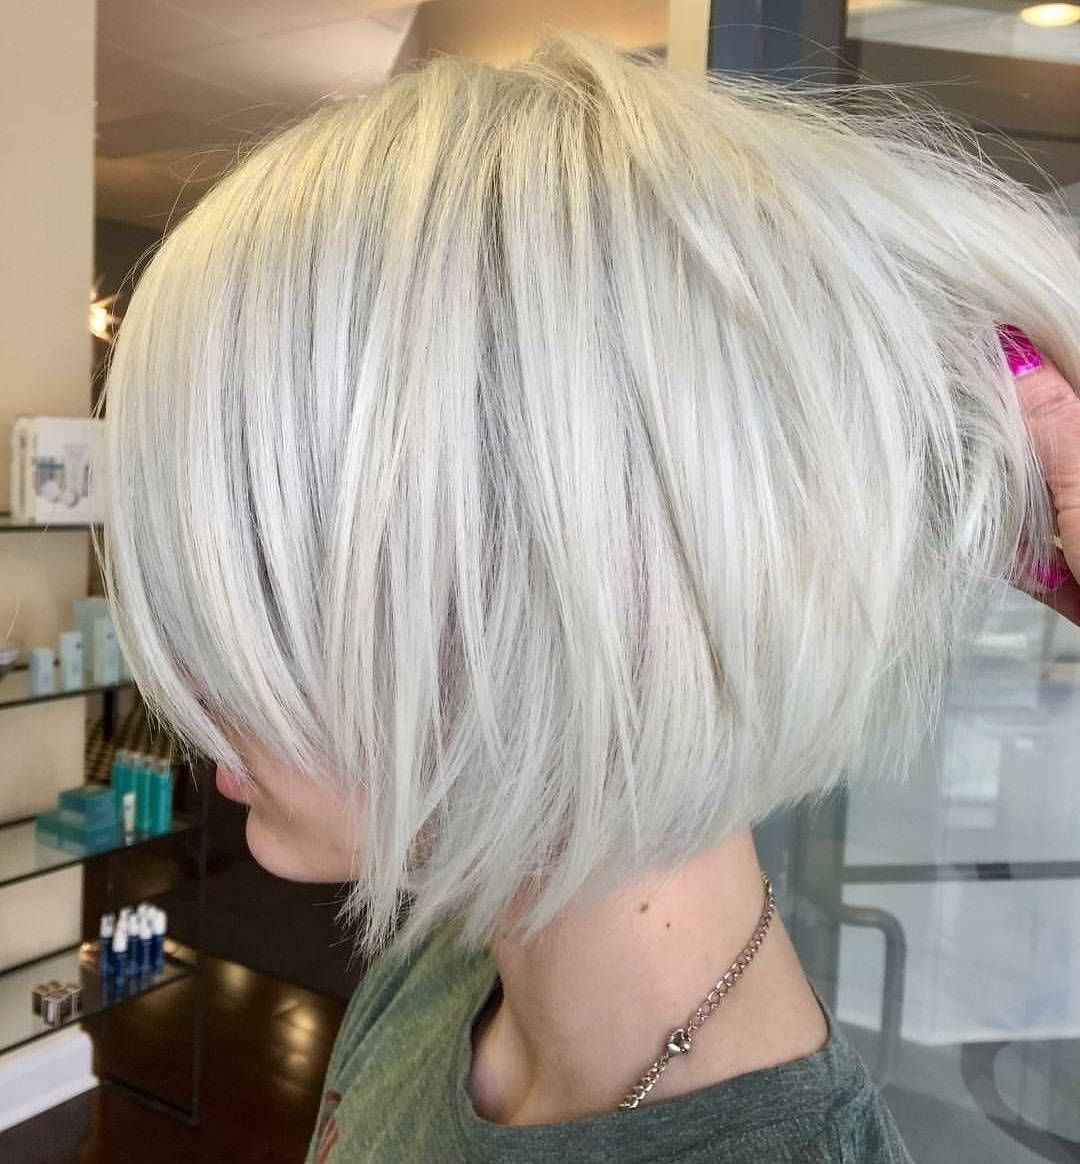 10 Layered Bob Hairstyles – Look Fab In New Blonde Shades | Hair Regarding White Blonde Curly Layered Bob Hairstyles (View 1 of 25)